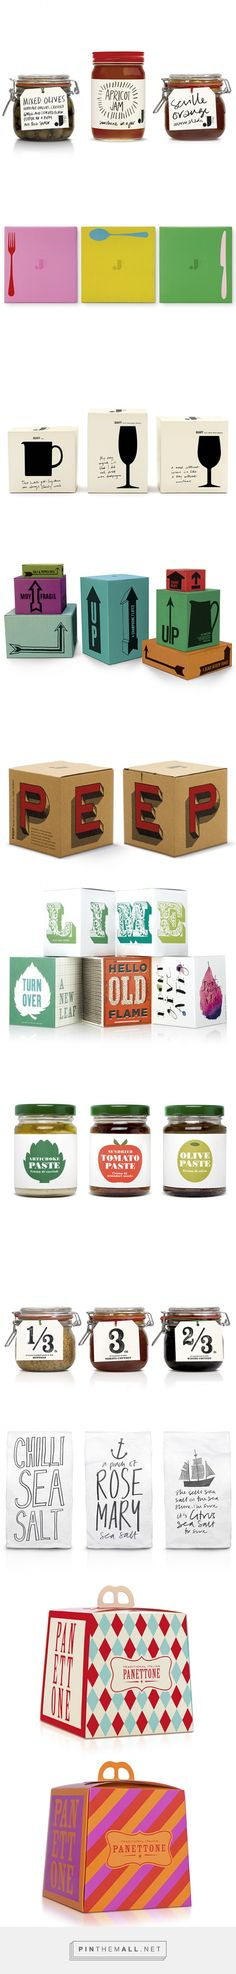 Jme-Packaging | Pearlfisher http://www.pearlfisher.com/designs/jme/ New brand creation, developing a new lifestyle concept that elevates the Jamie Oliver experience from the kitchen to the home.